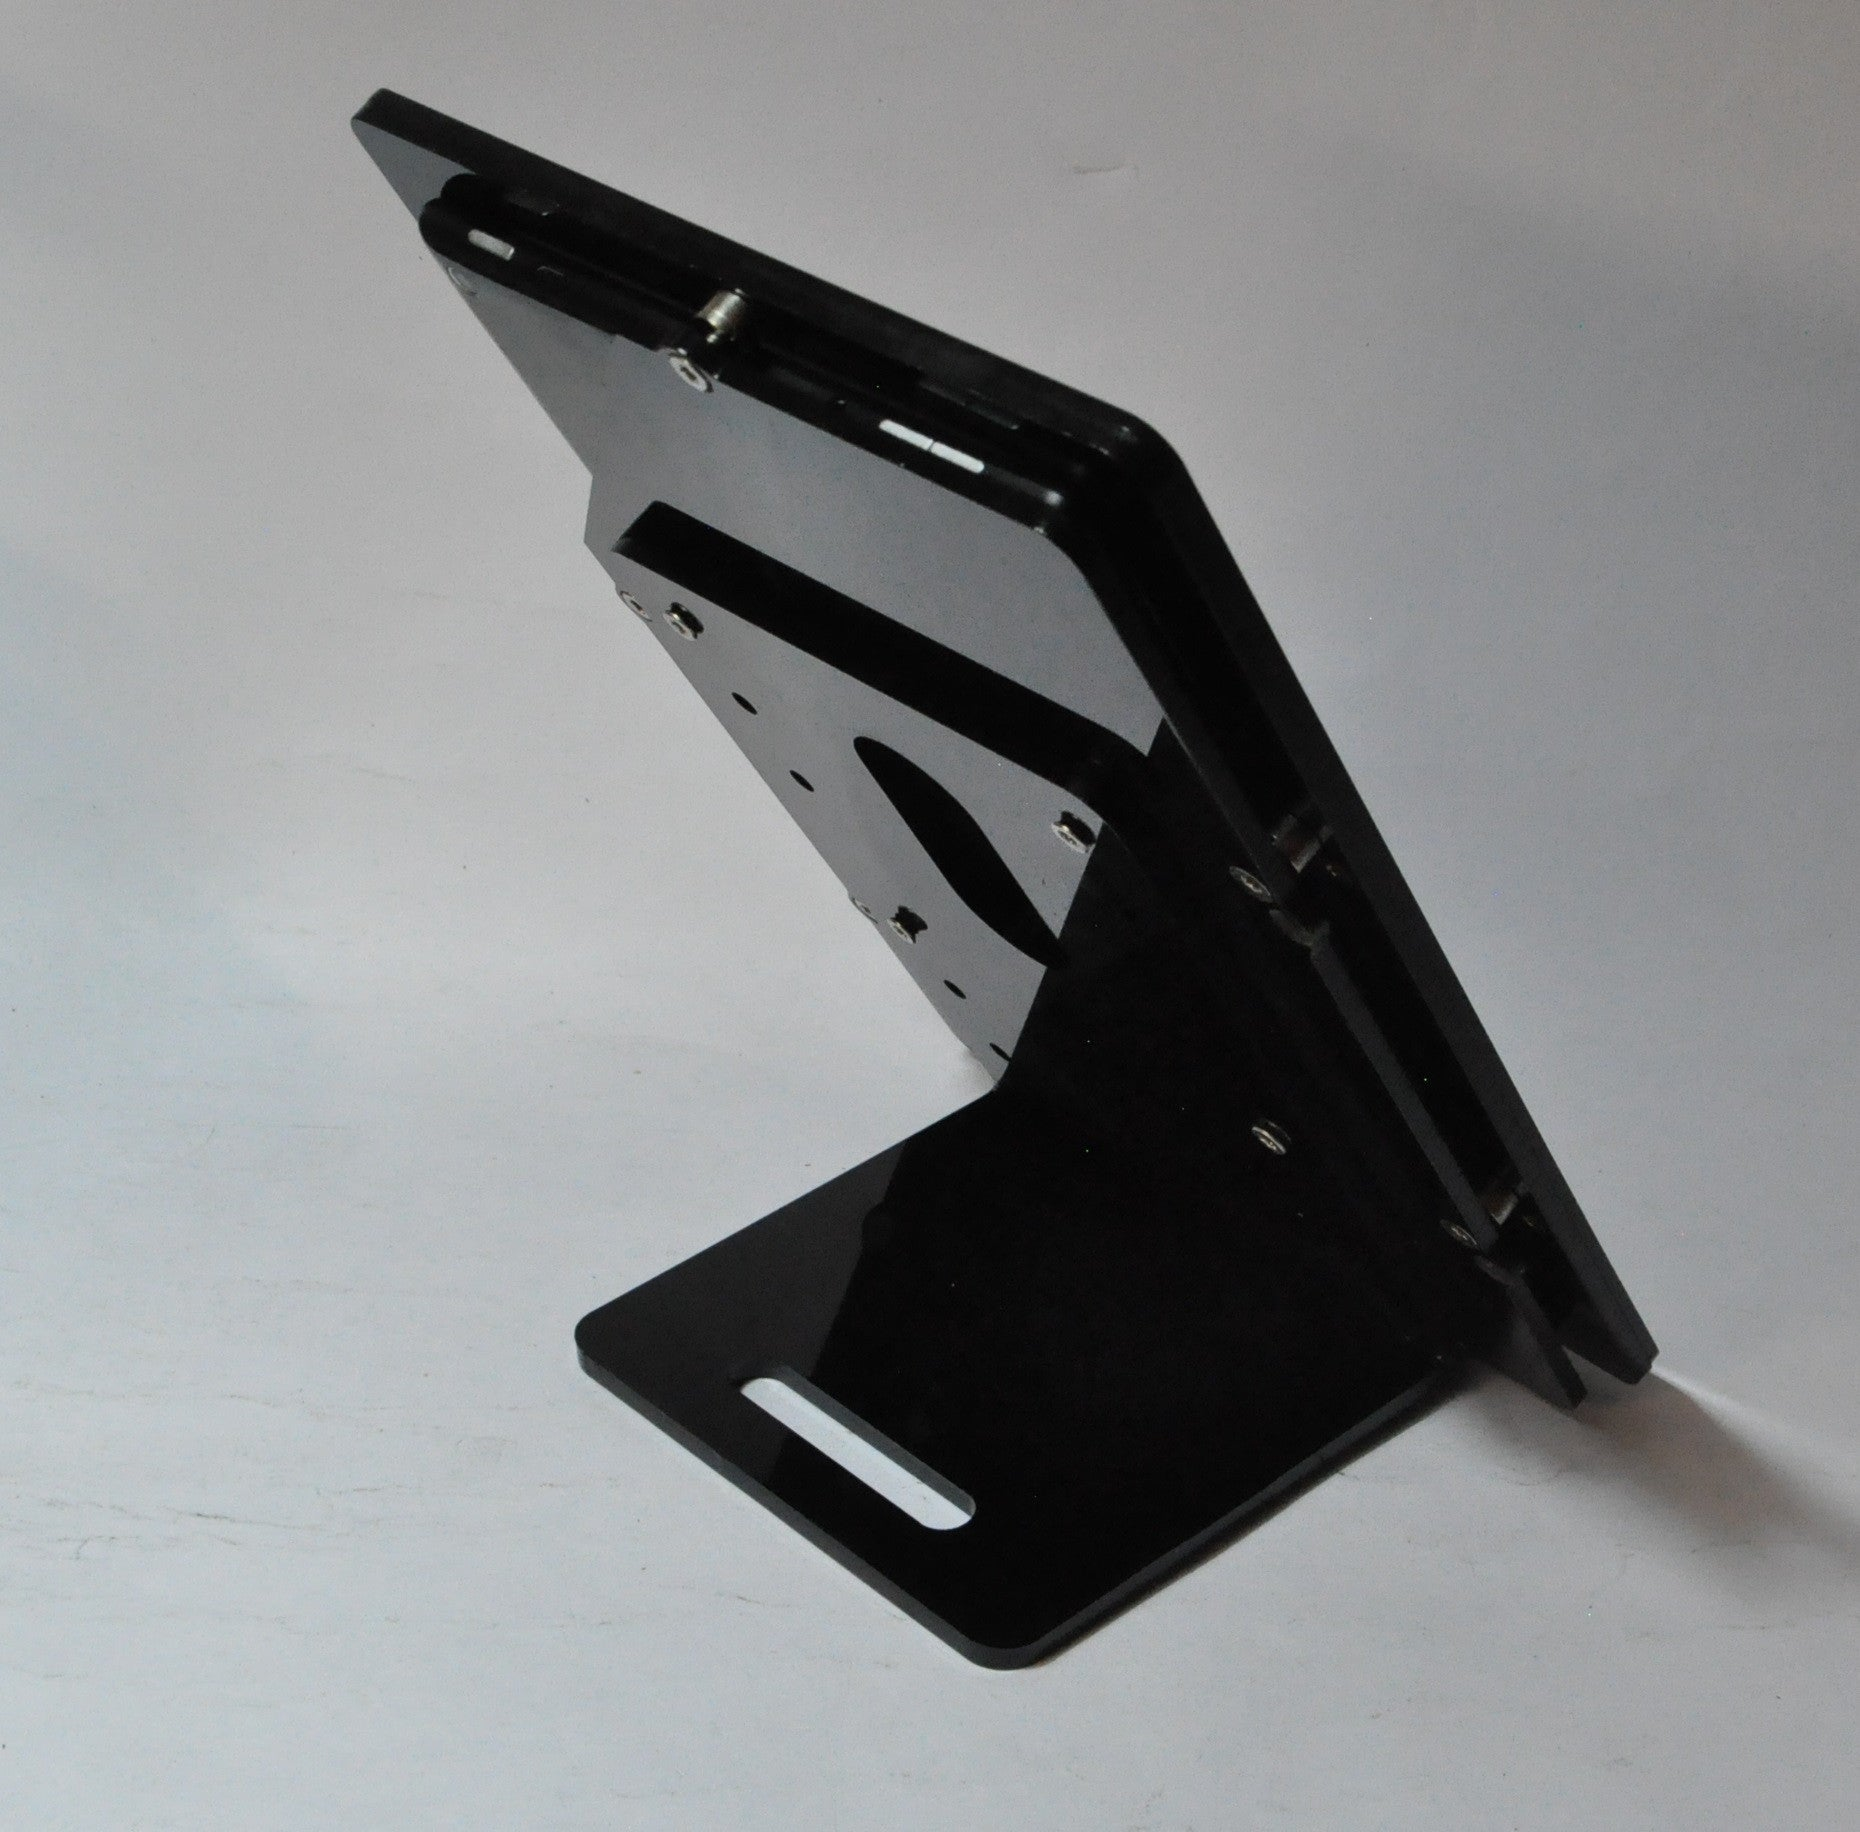 Custom Design Acrylic Security VESA Kit for Wall Mount, Desktop Stand